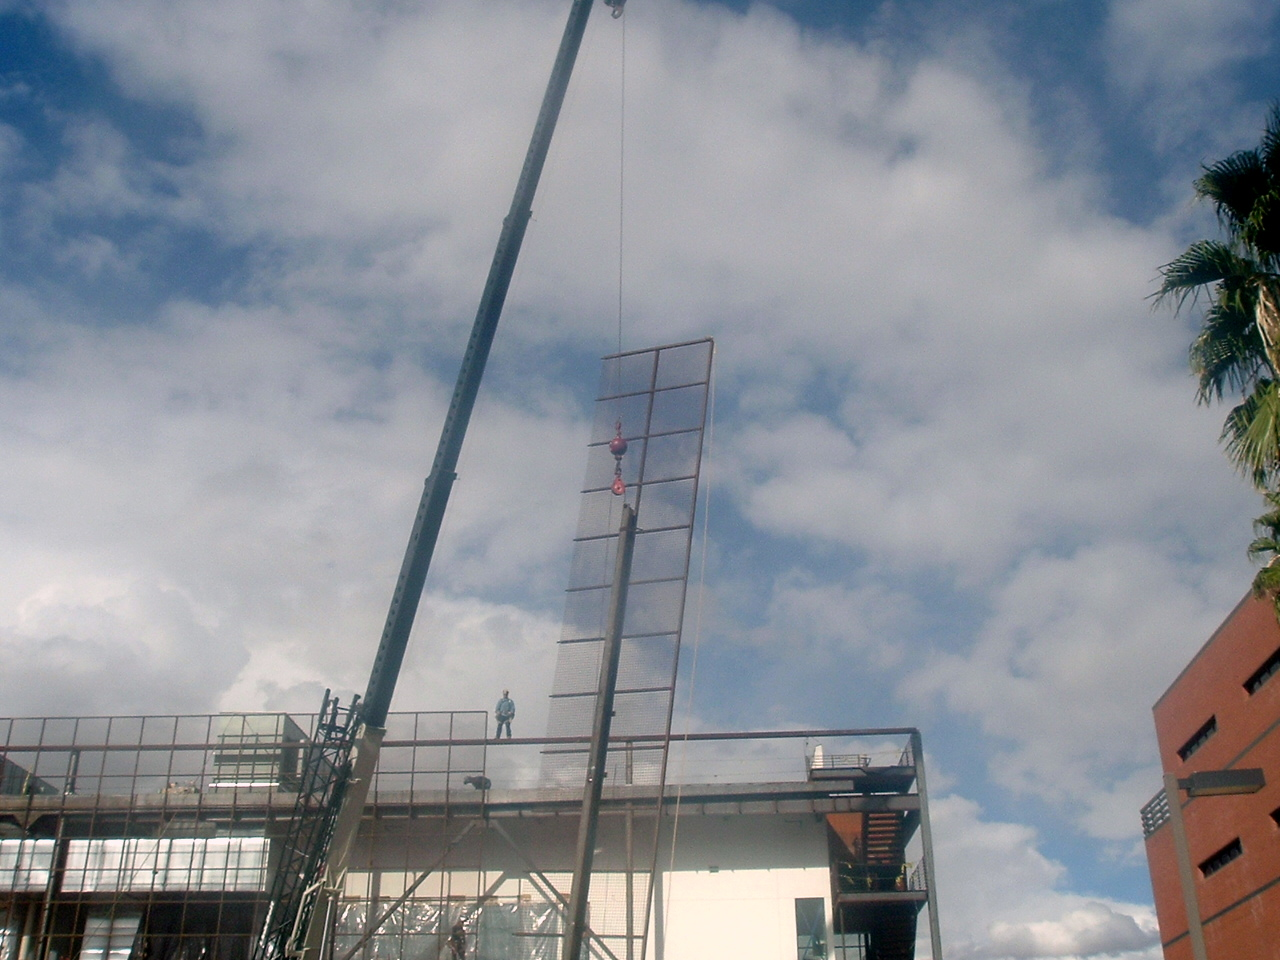 J.B. Steel - Erection of Large Wire Mesh Panels Image | ProView